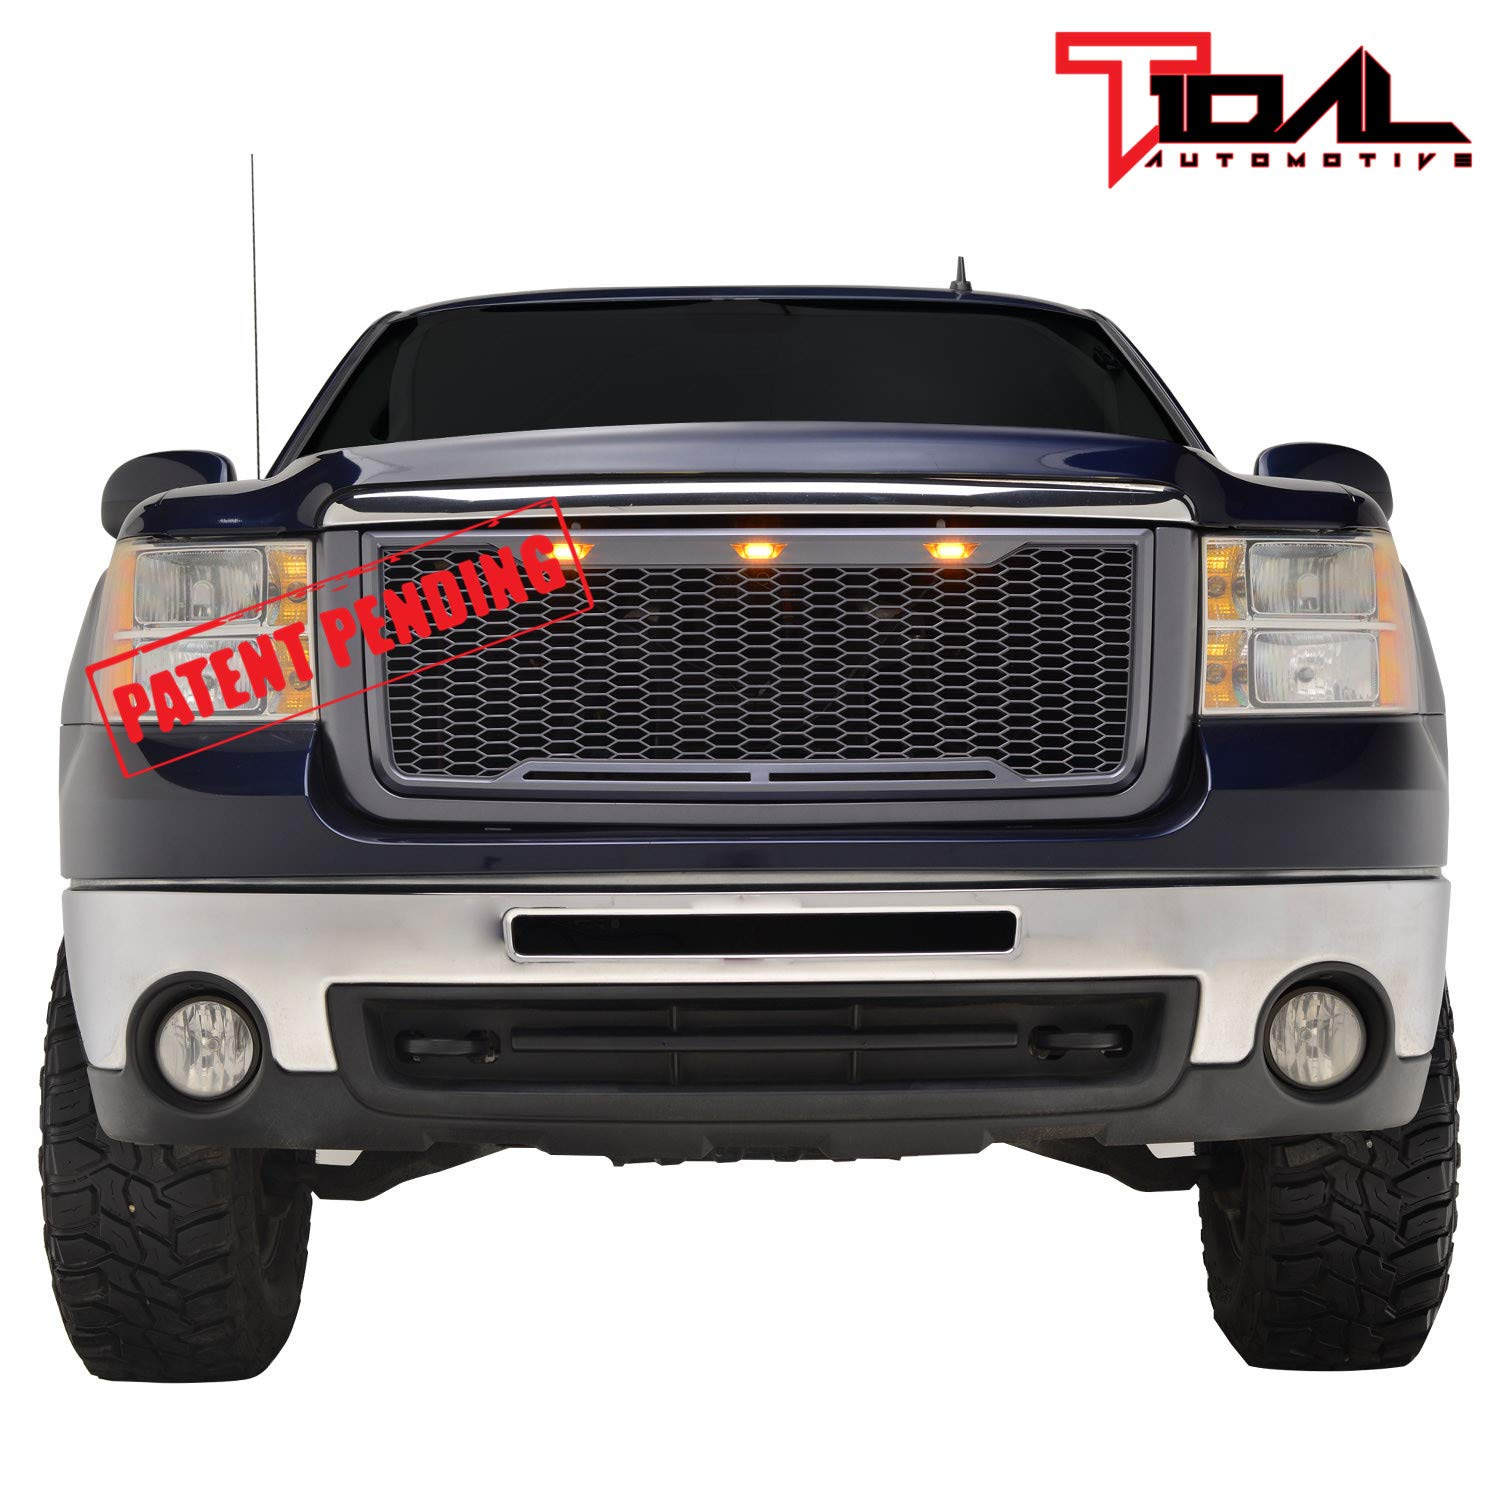 EAG Replacement Upper Grille Front Mesh Grill W//LED Lights Charcoal Gray Fit for 07-10 GMC Sierra 2500//3500 Heavy Duty